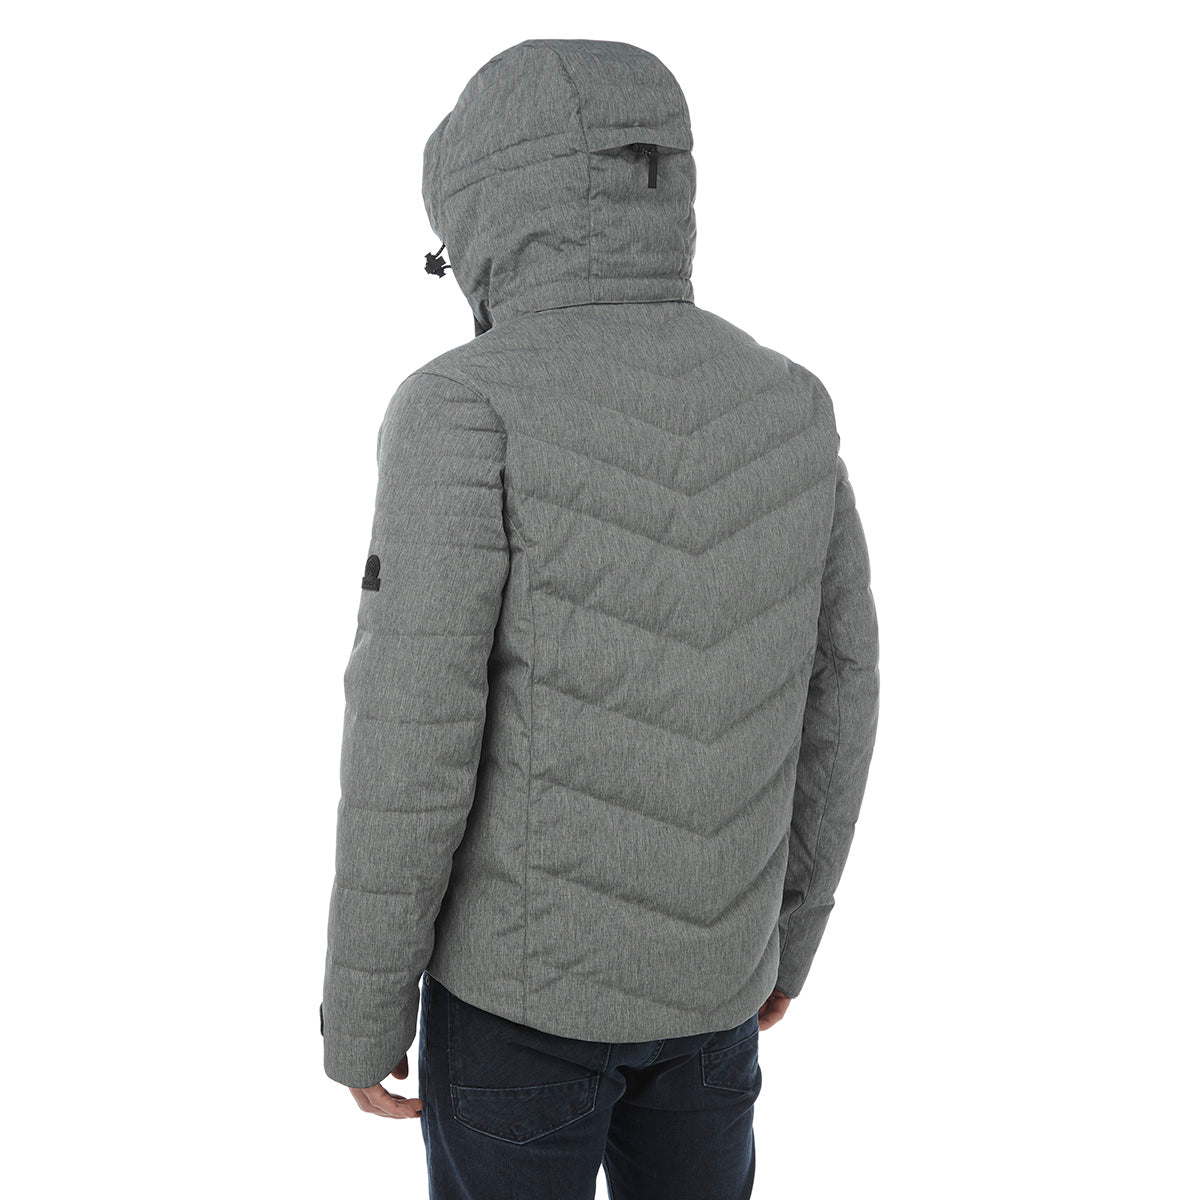 Scar Mens Down Insulated Ski Jacket - Grey Marl image 4